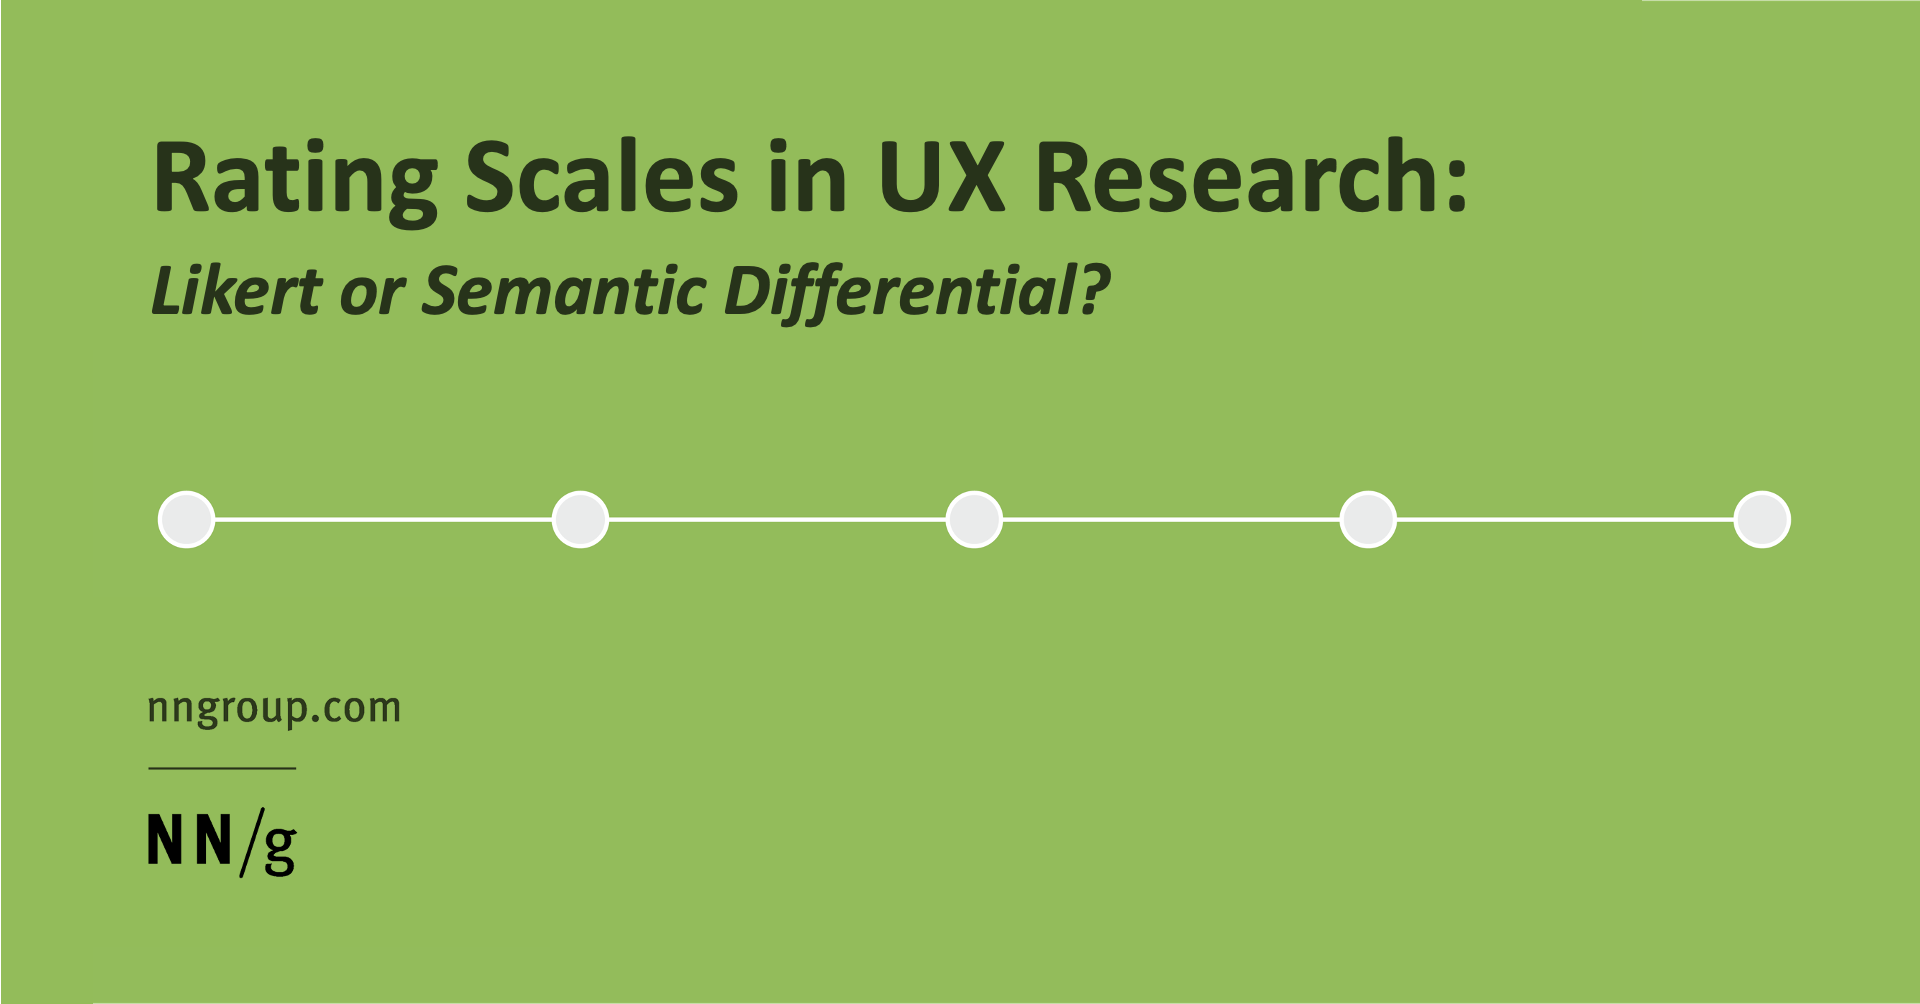 Rating Scales in UX Research: Likert or Semantic Differential?